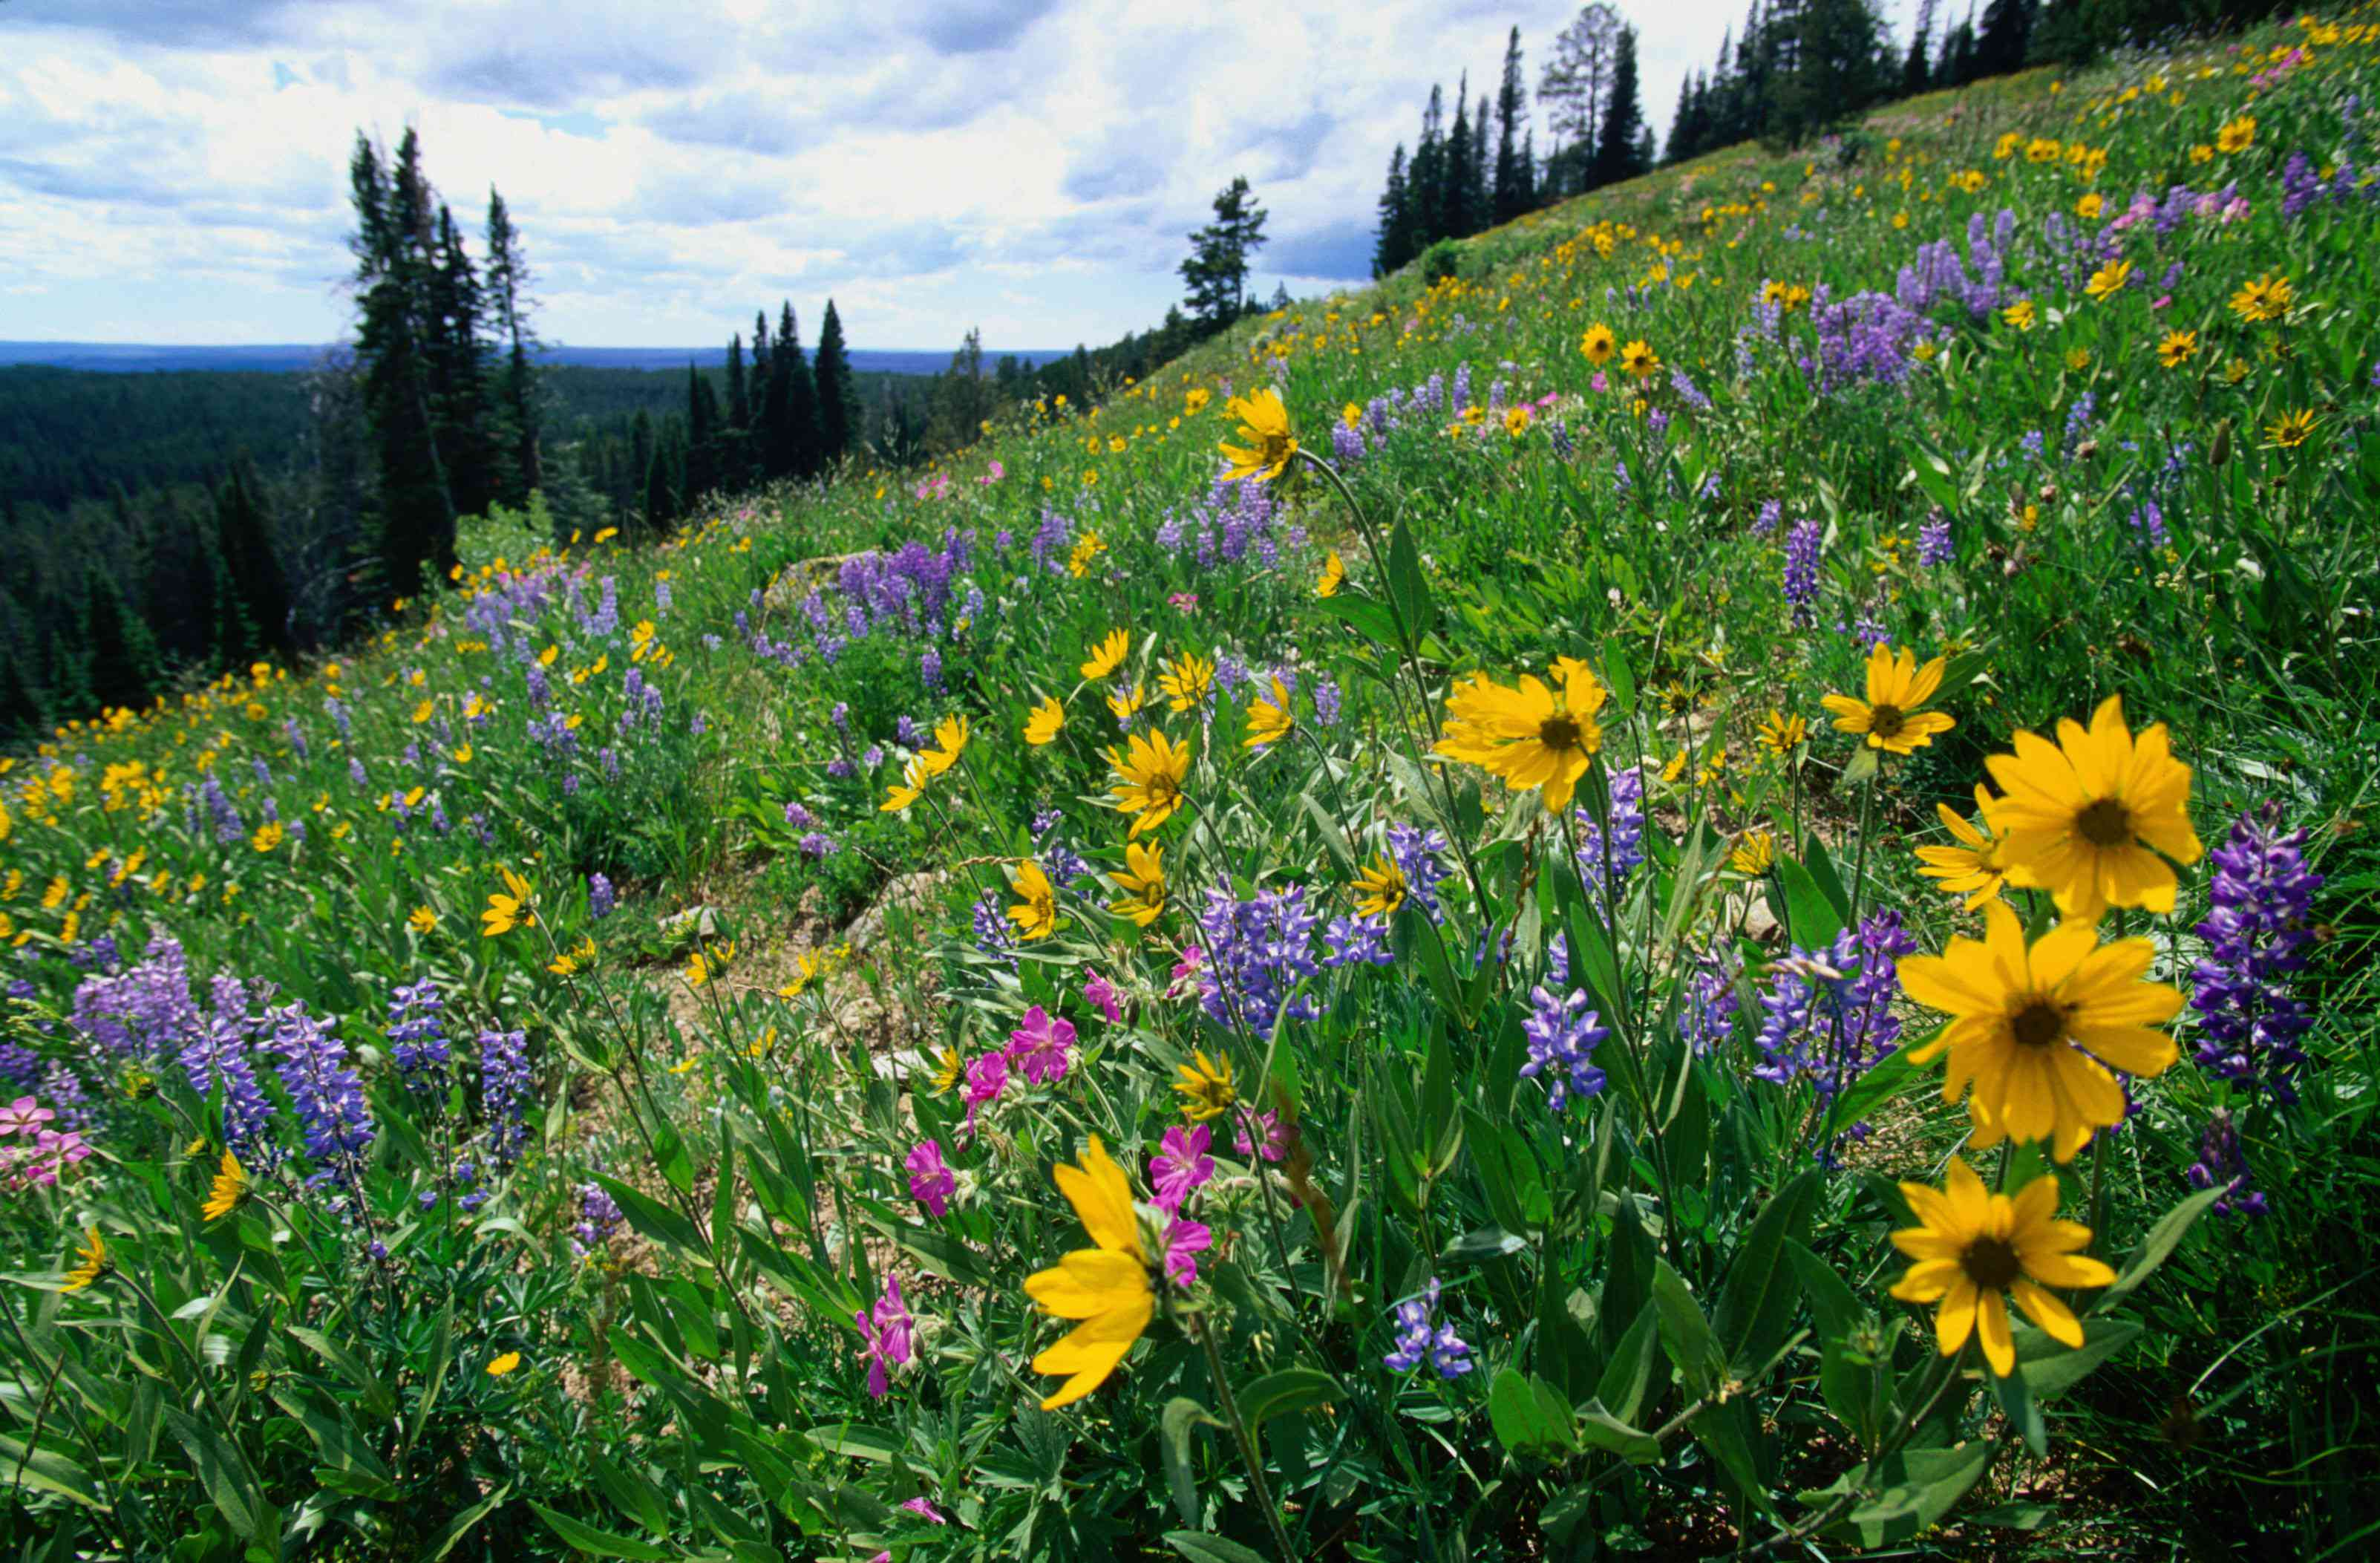 Blue lupins and heartleaf arnica wildflowers